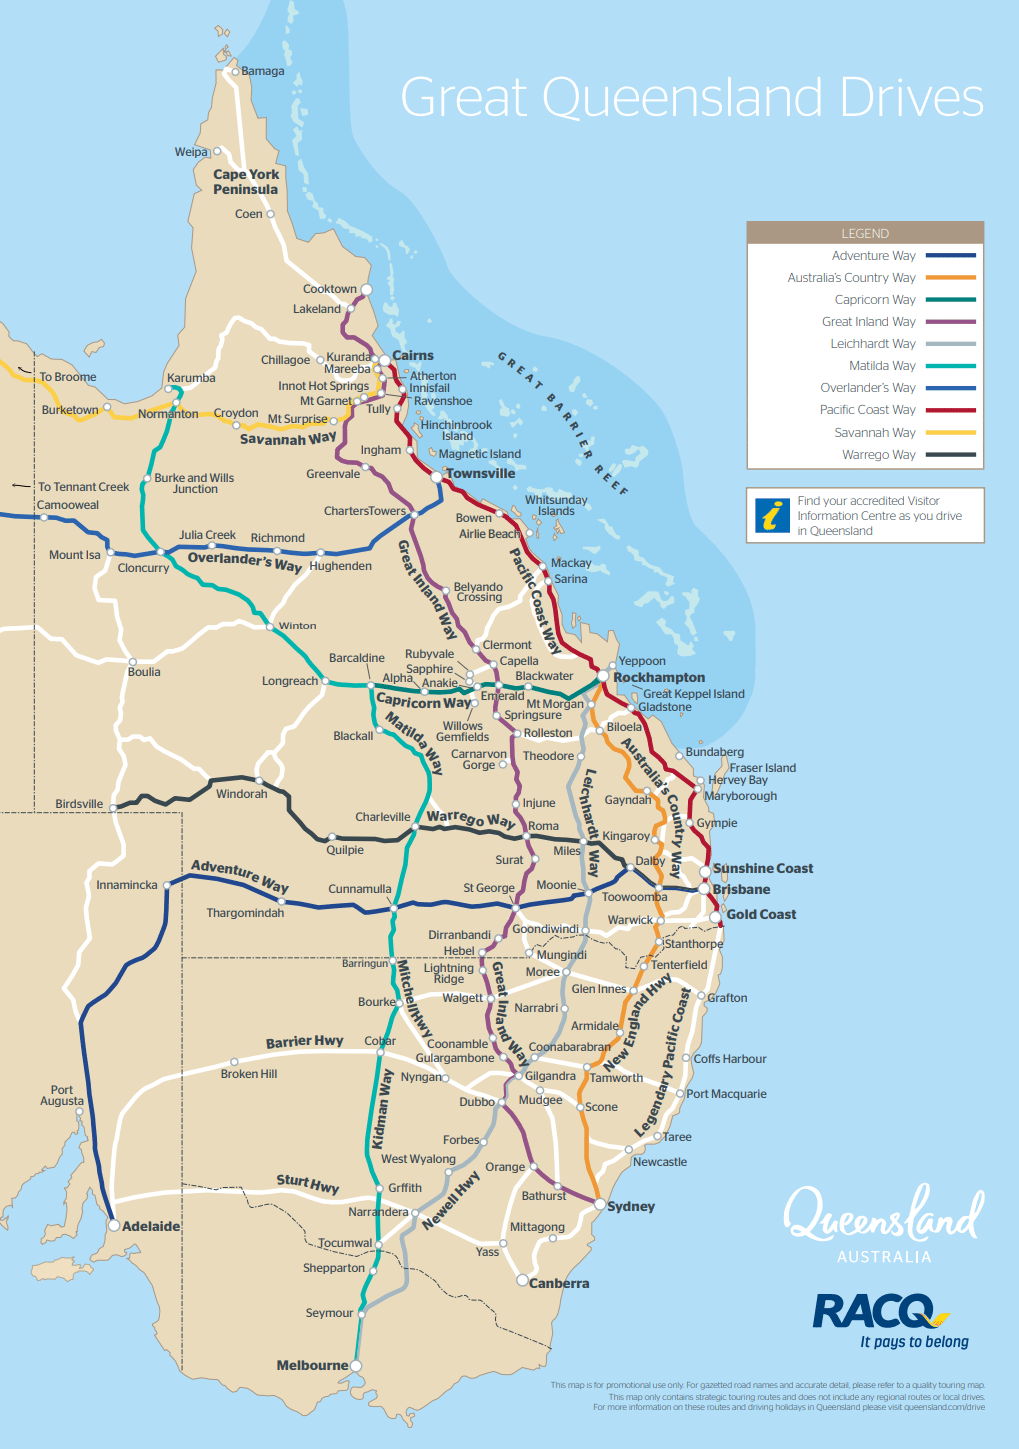 Maps Of Queensland Queensland Drive Maps | Outback Queensland